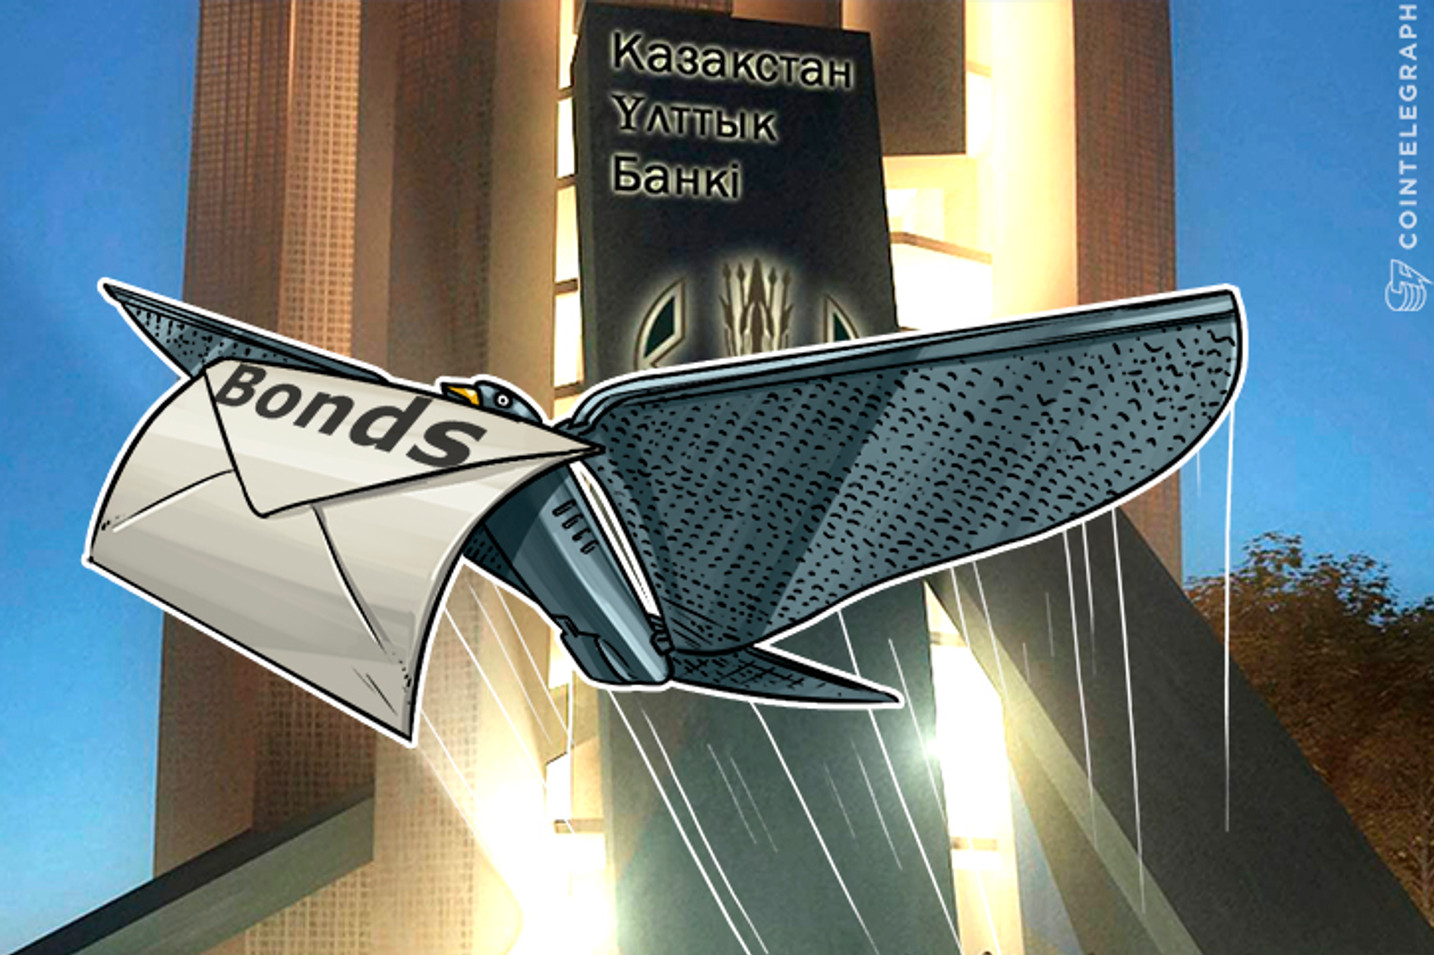 Kazakhstan Central Bank To Sell Blockchain-Based Bonds